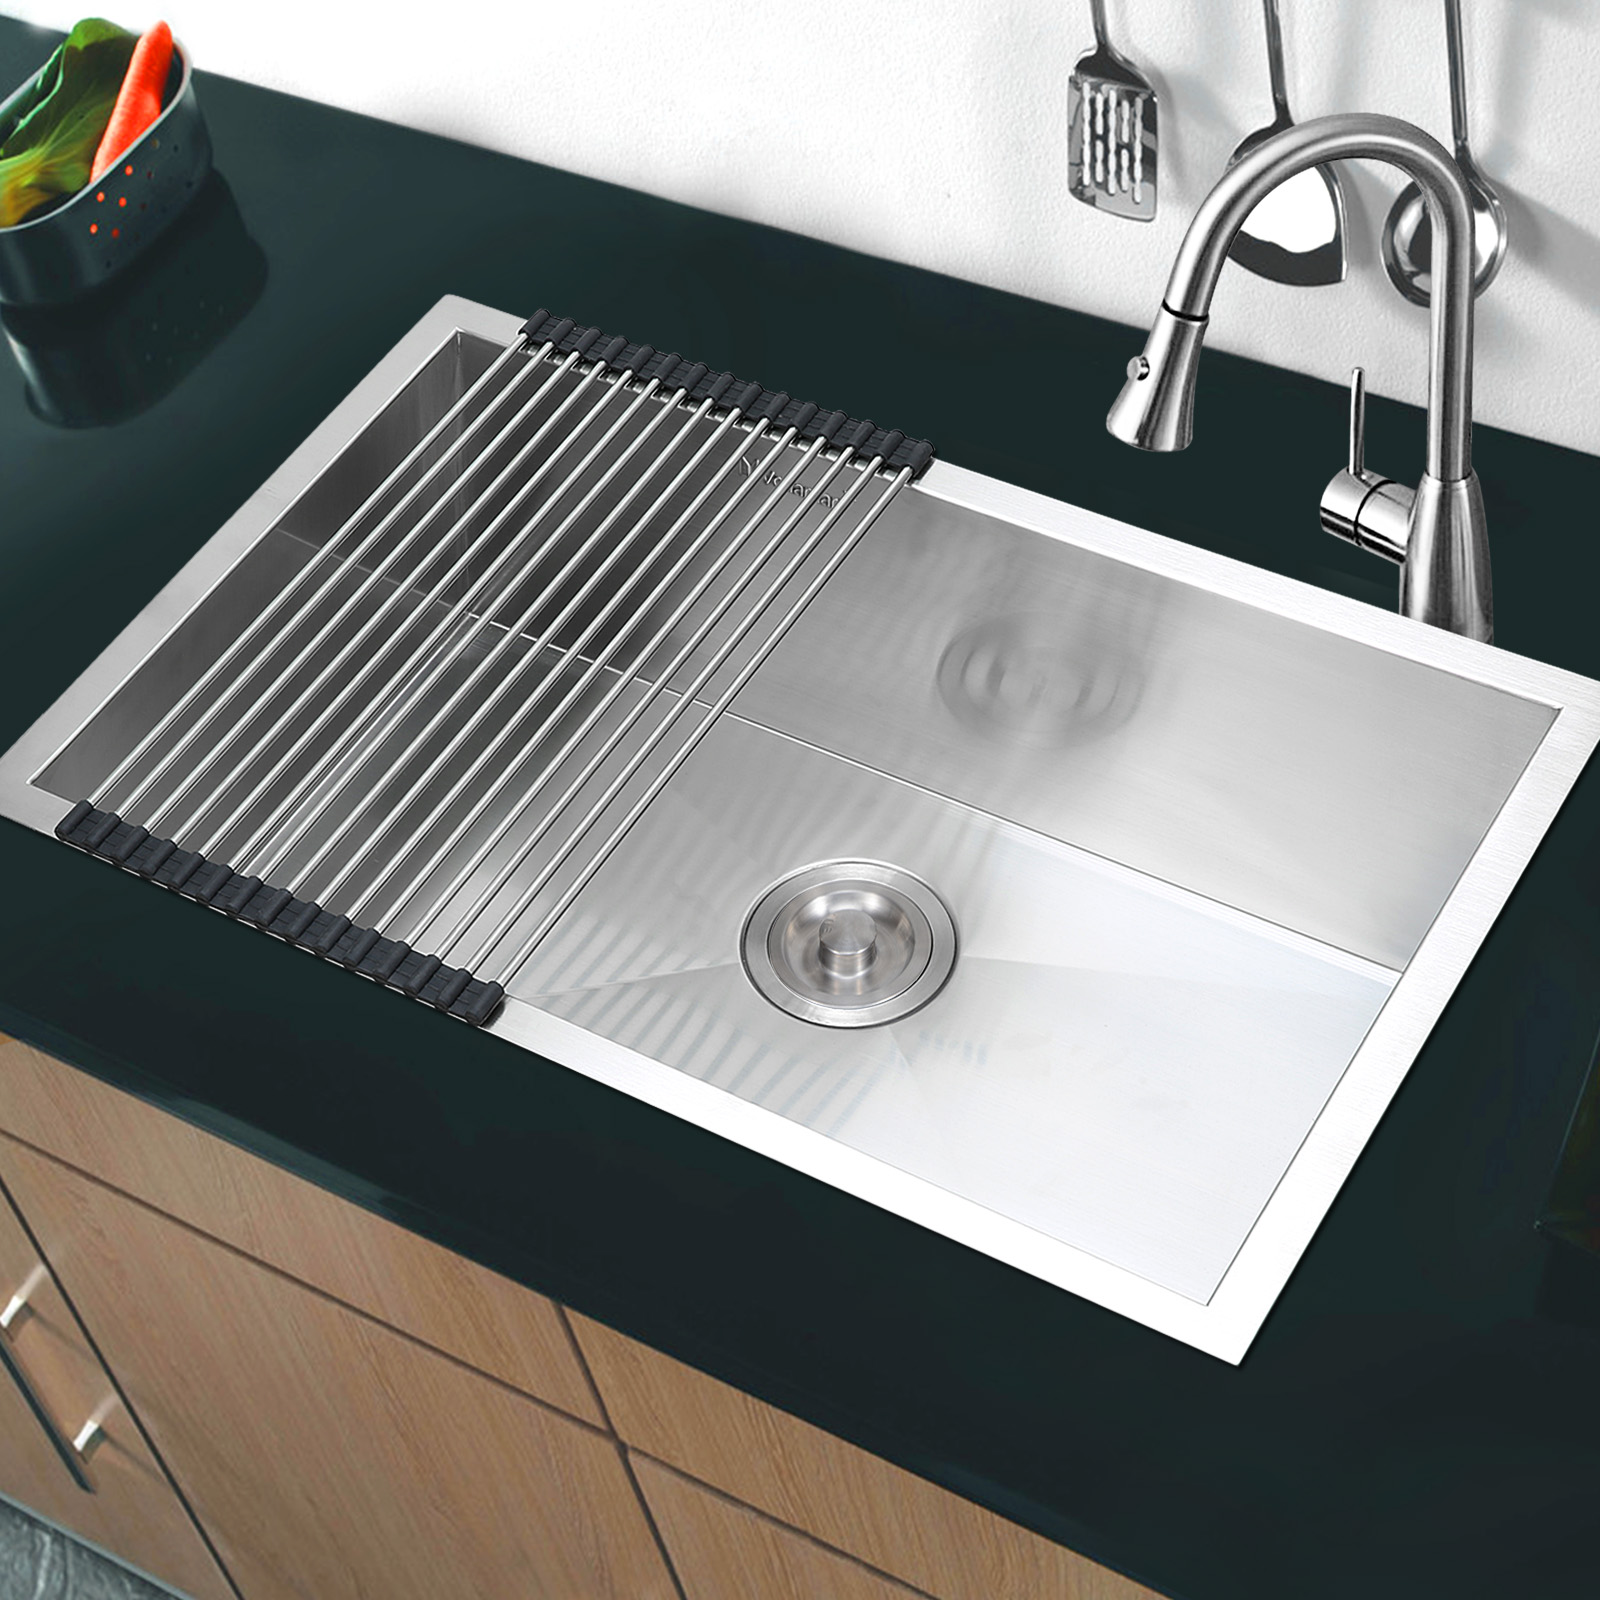 Single Bowl Sink With Roll Mat Without Waterlet Description